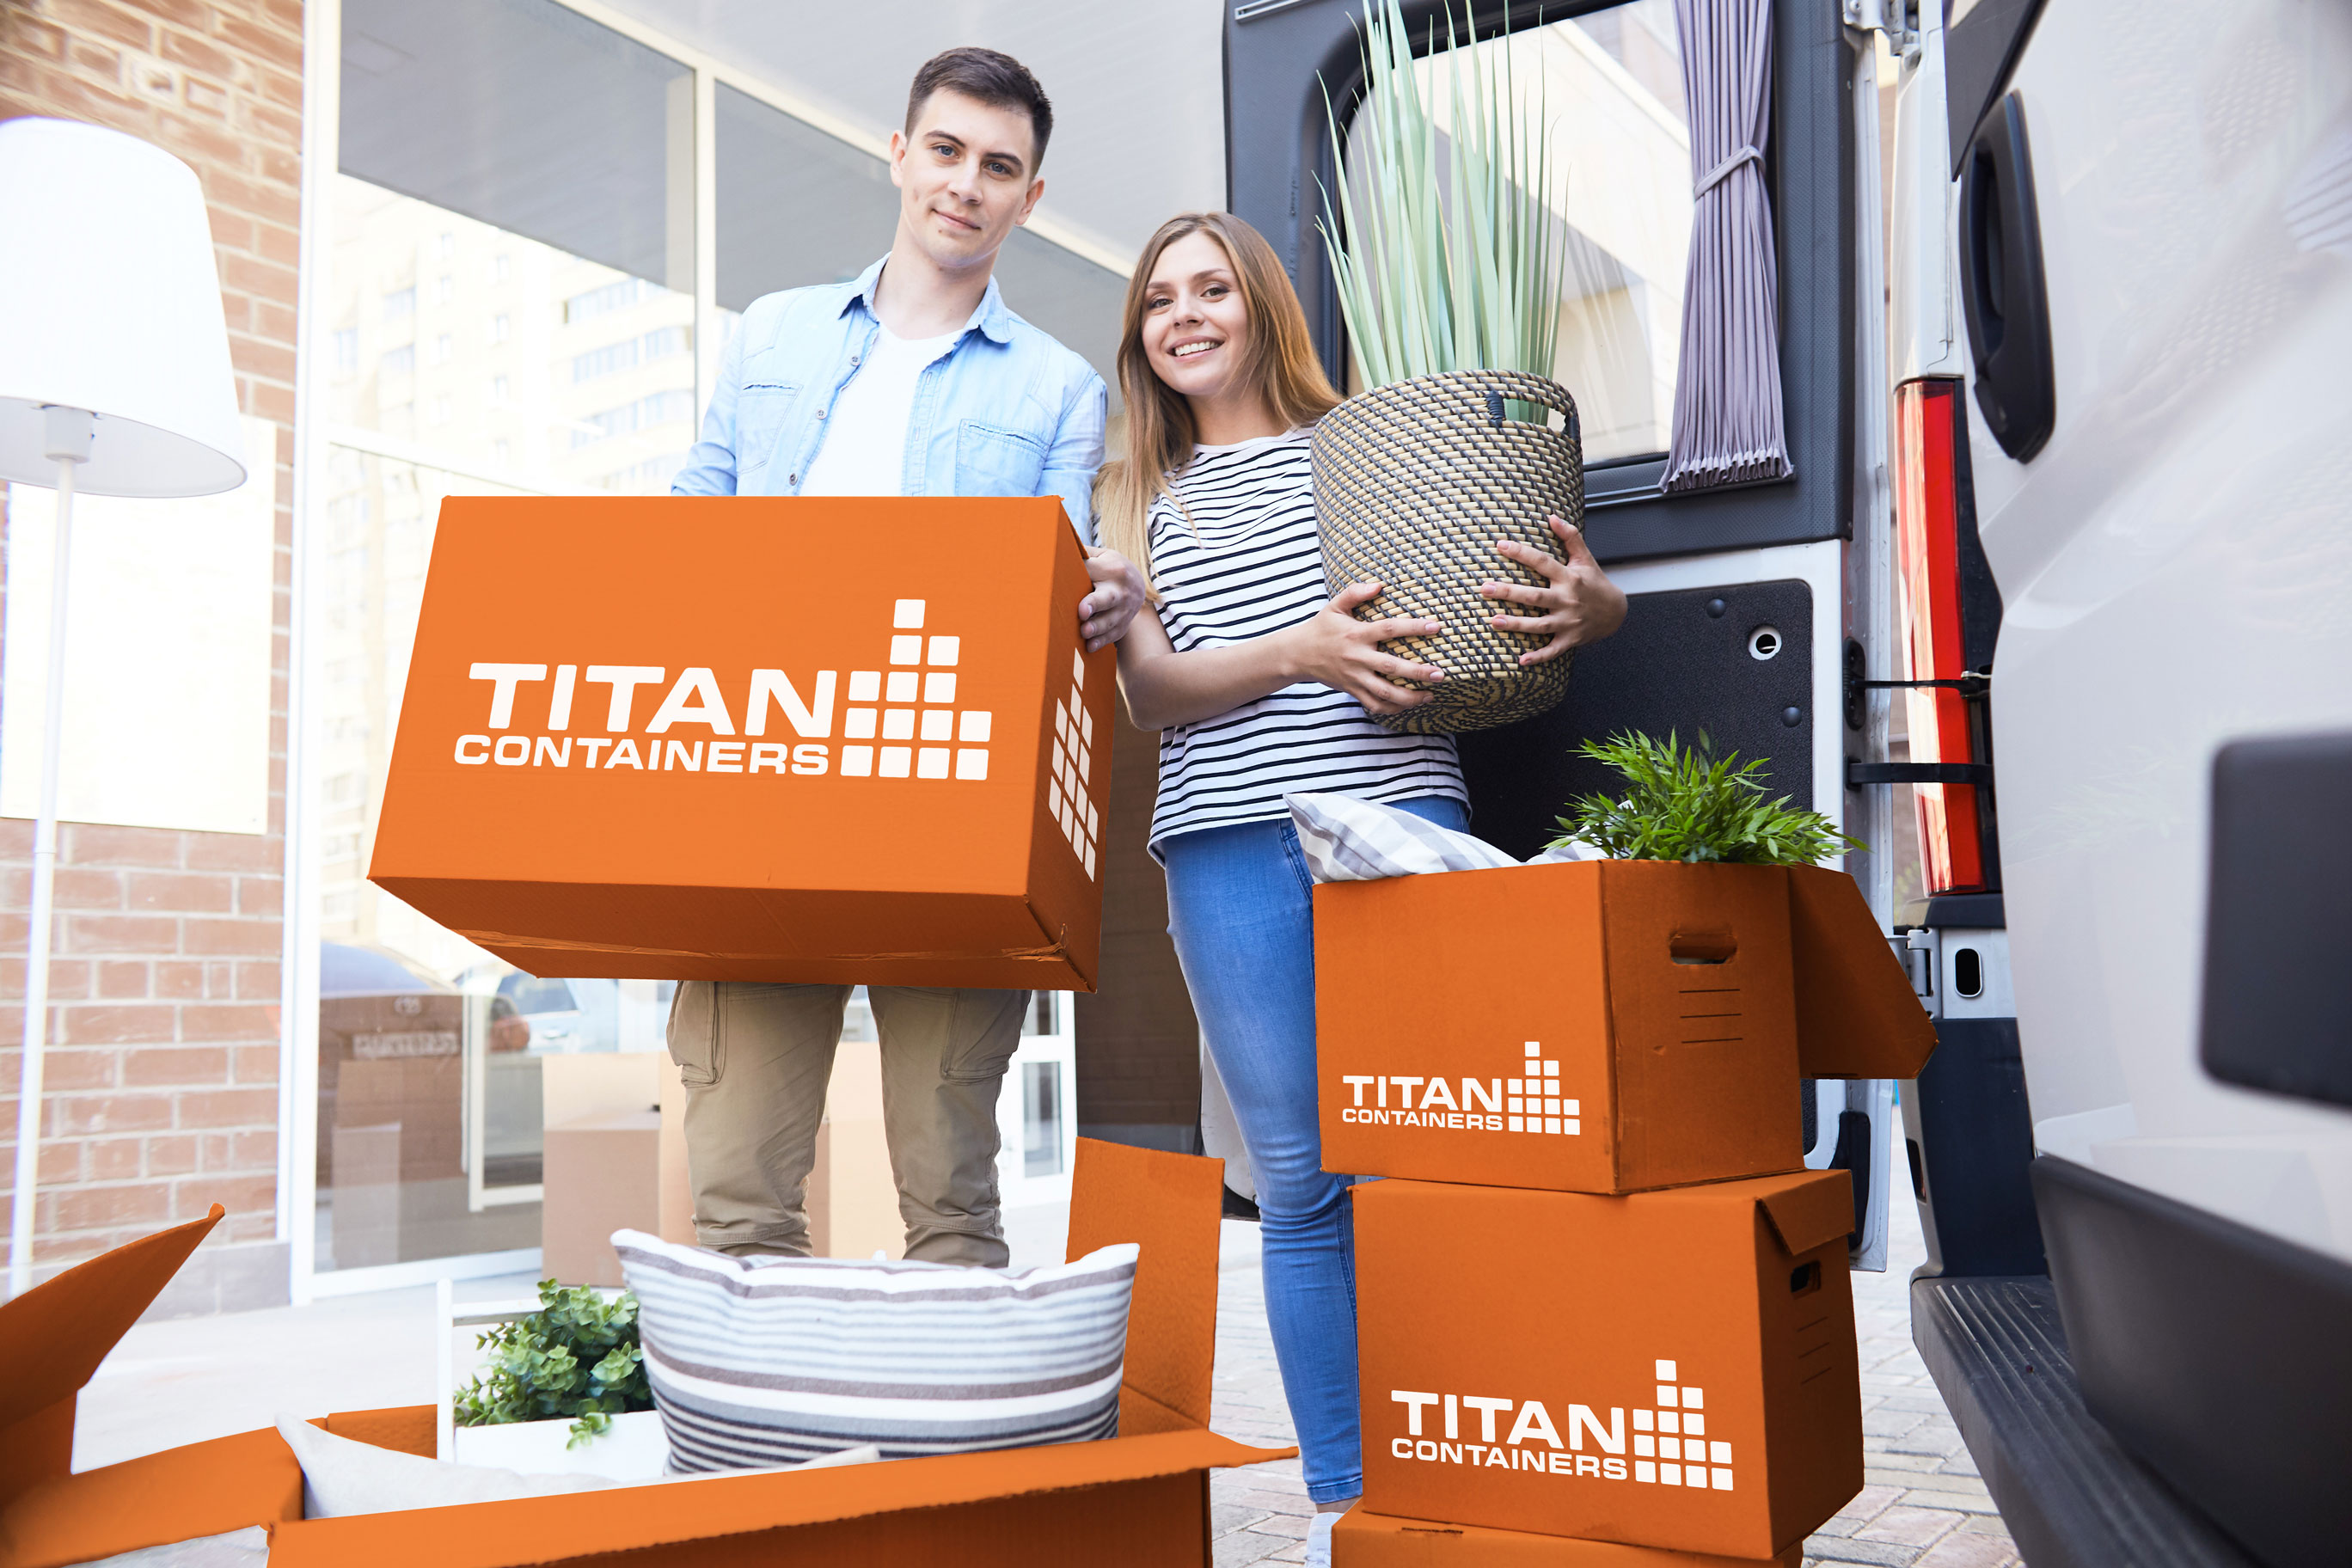 couple-with-TITAN Container Self Storage boxes